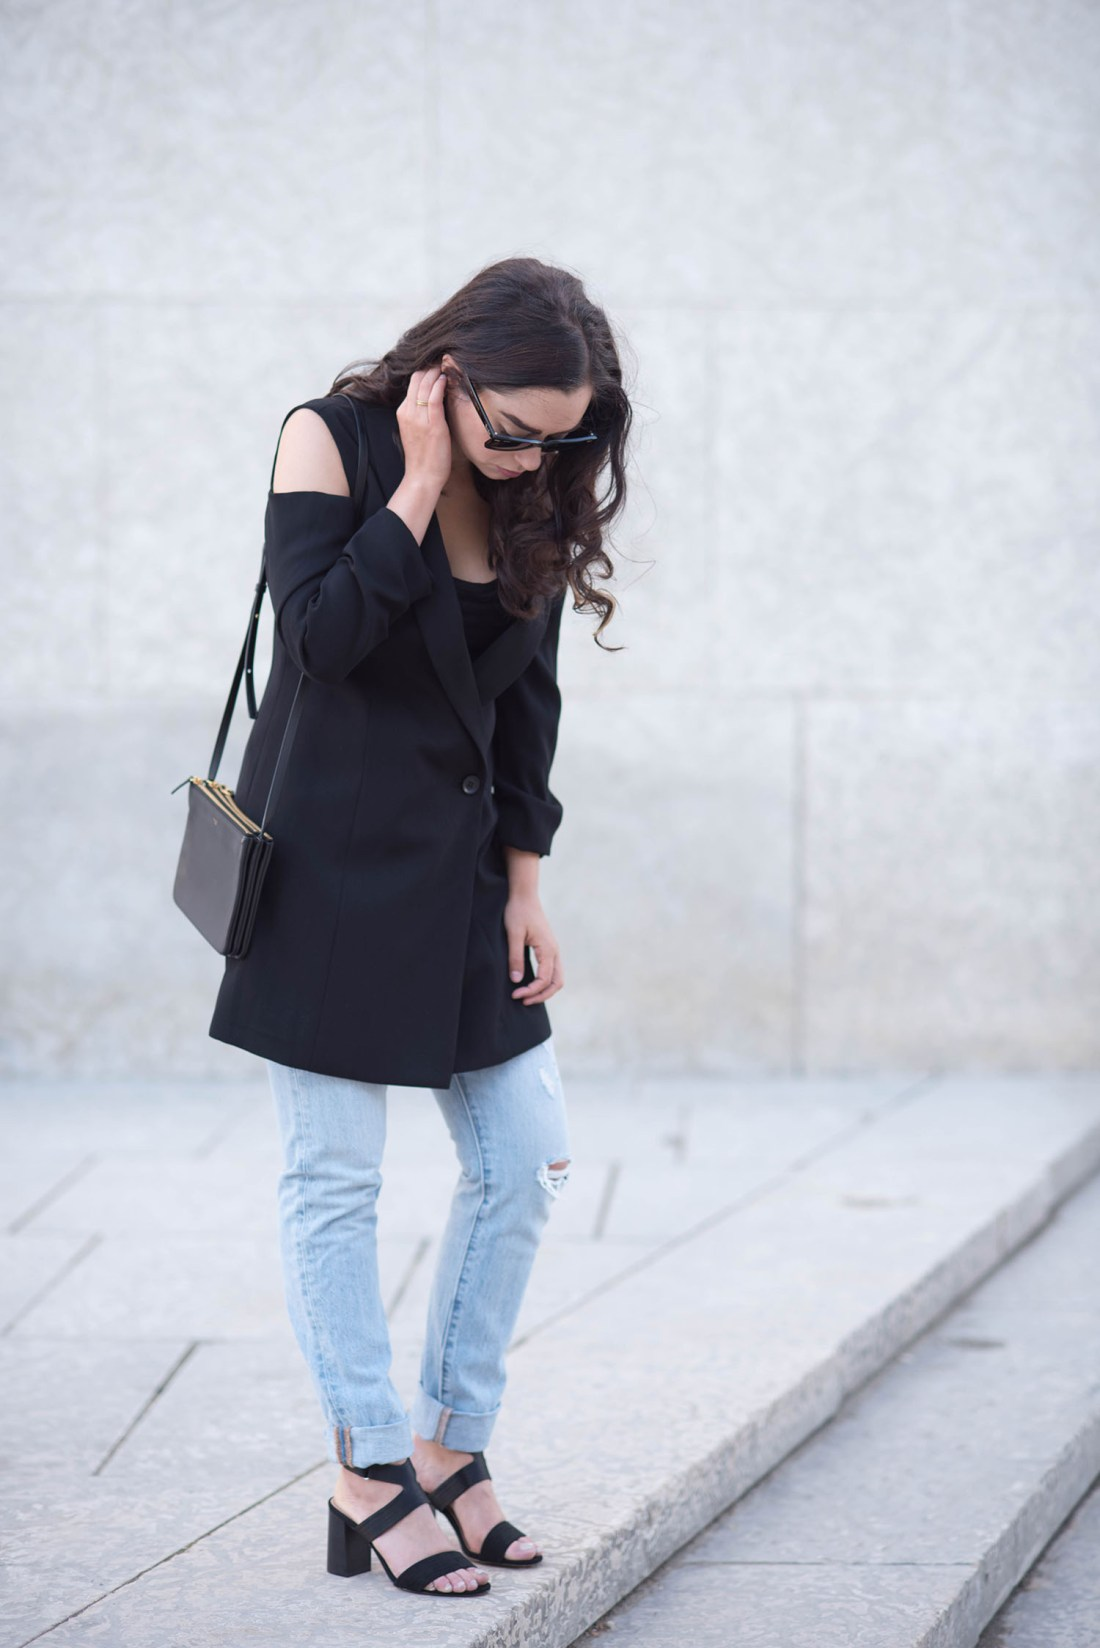 Style blogger Cee Fardoe of Coco & Vera stands wearing Levis 501 skinny jeans and an Ever New coat